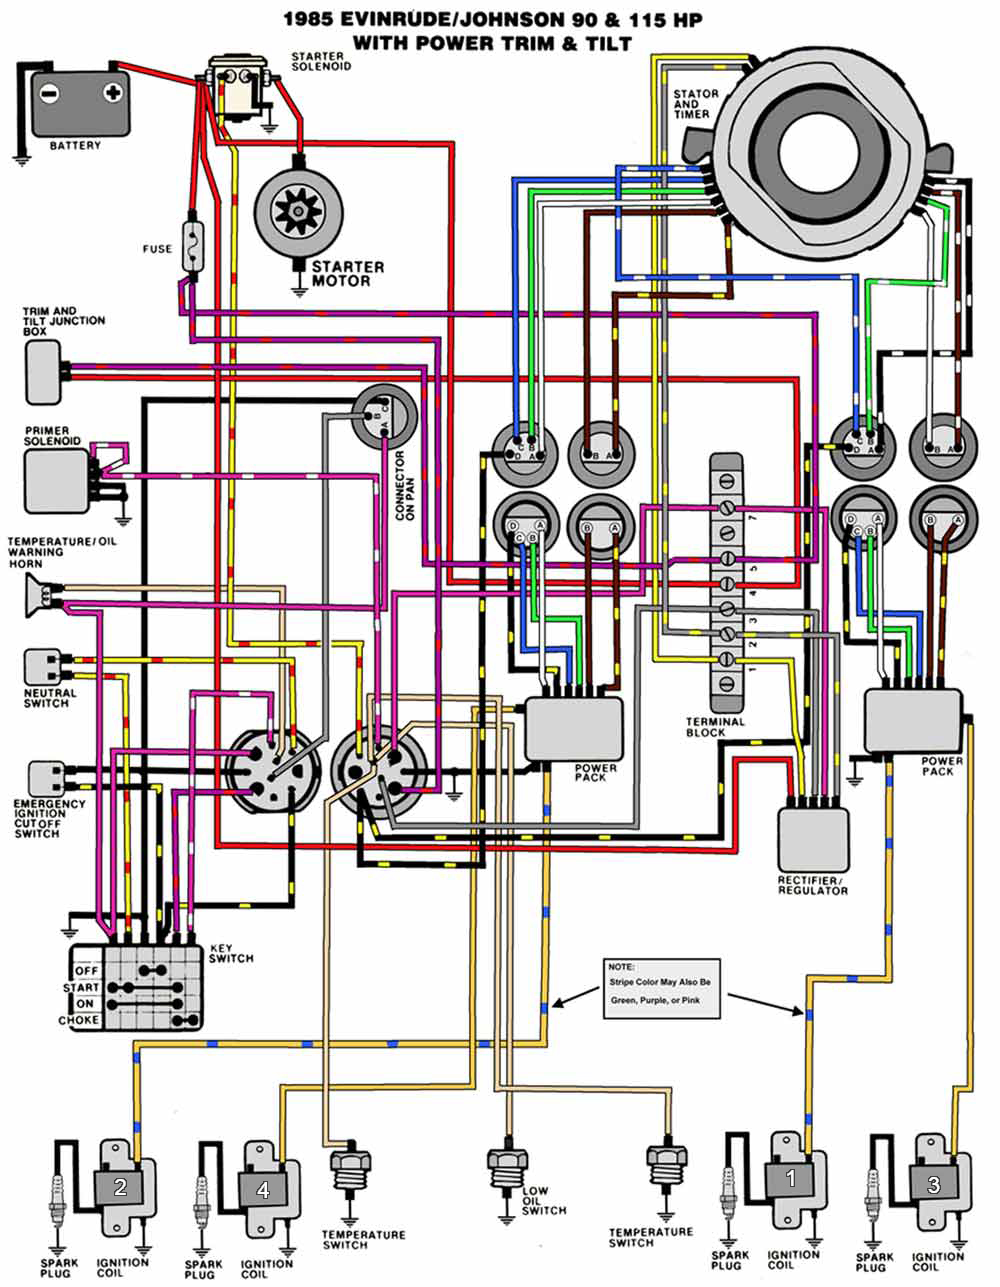 1995 Evinrude Wiring Diagram | Wiring Schematic Diagram on